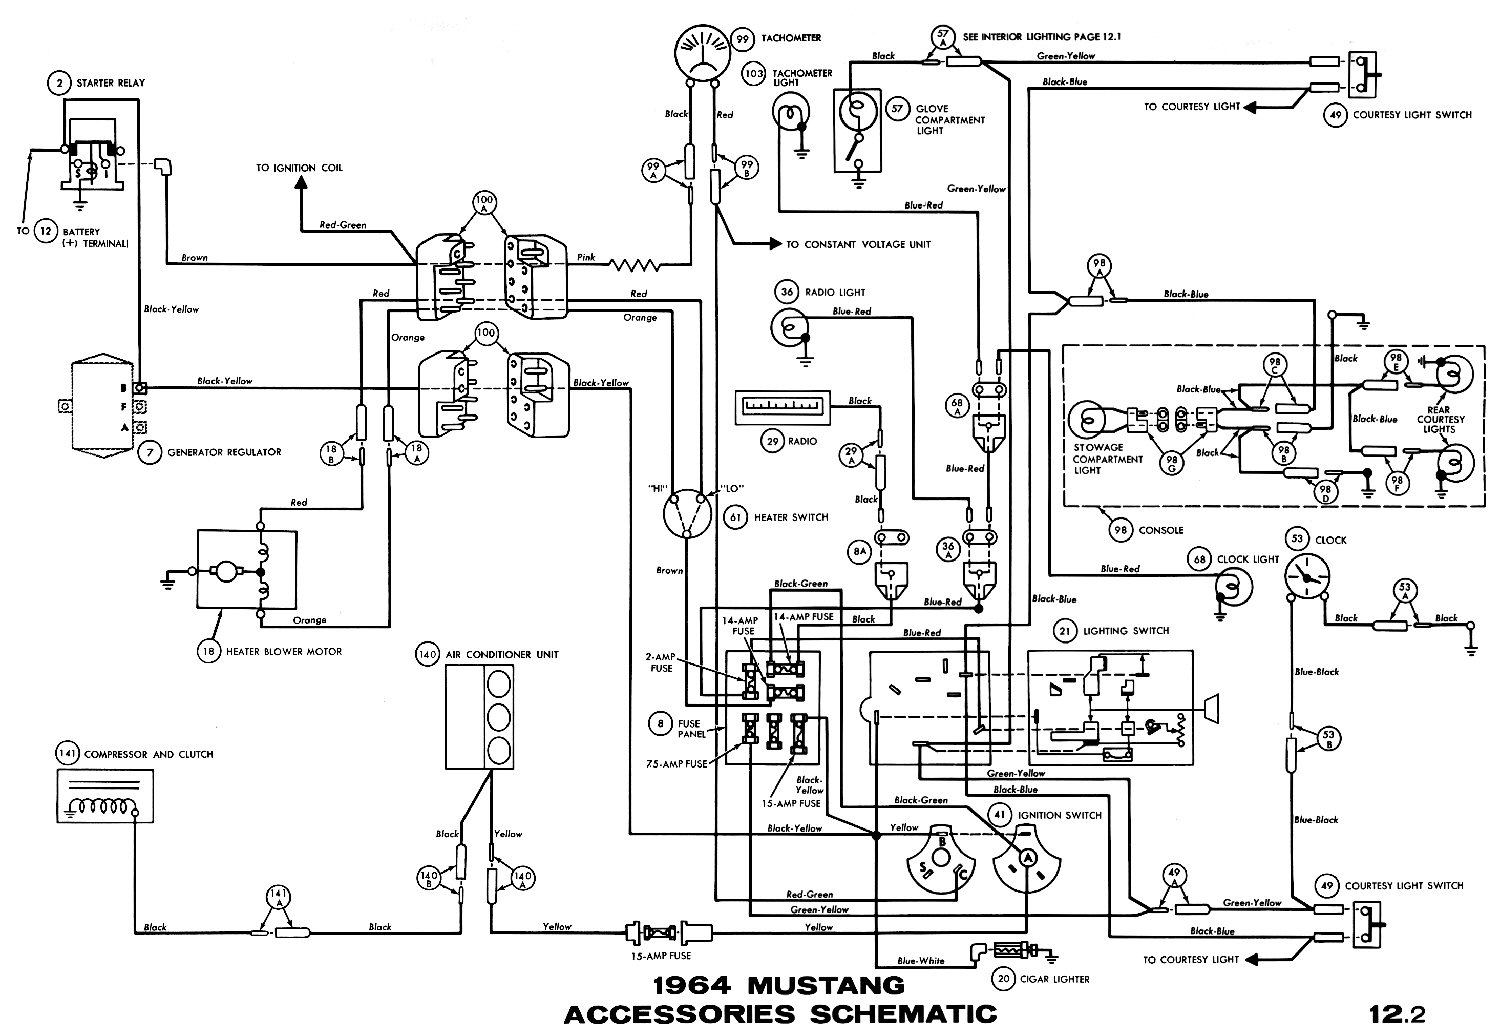 1964m 2015 mustang wiring diagram schematic mustang 2015 \u2022 free wiring mustang wiring diagrams at gsmx.co